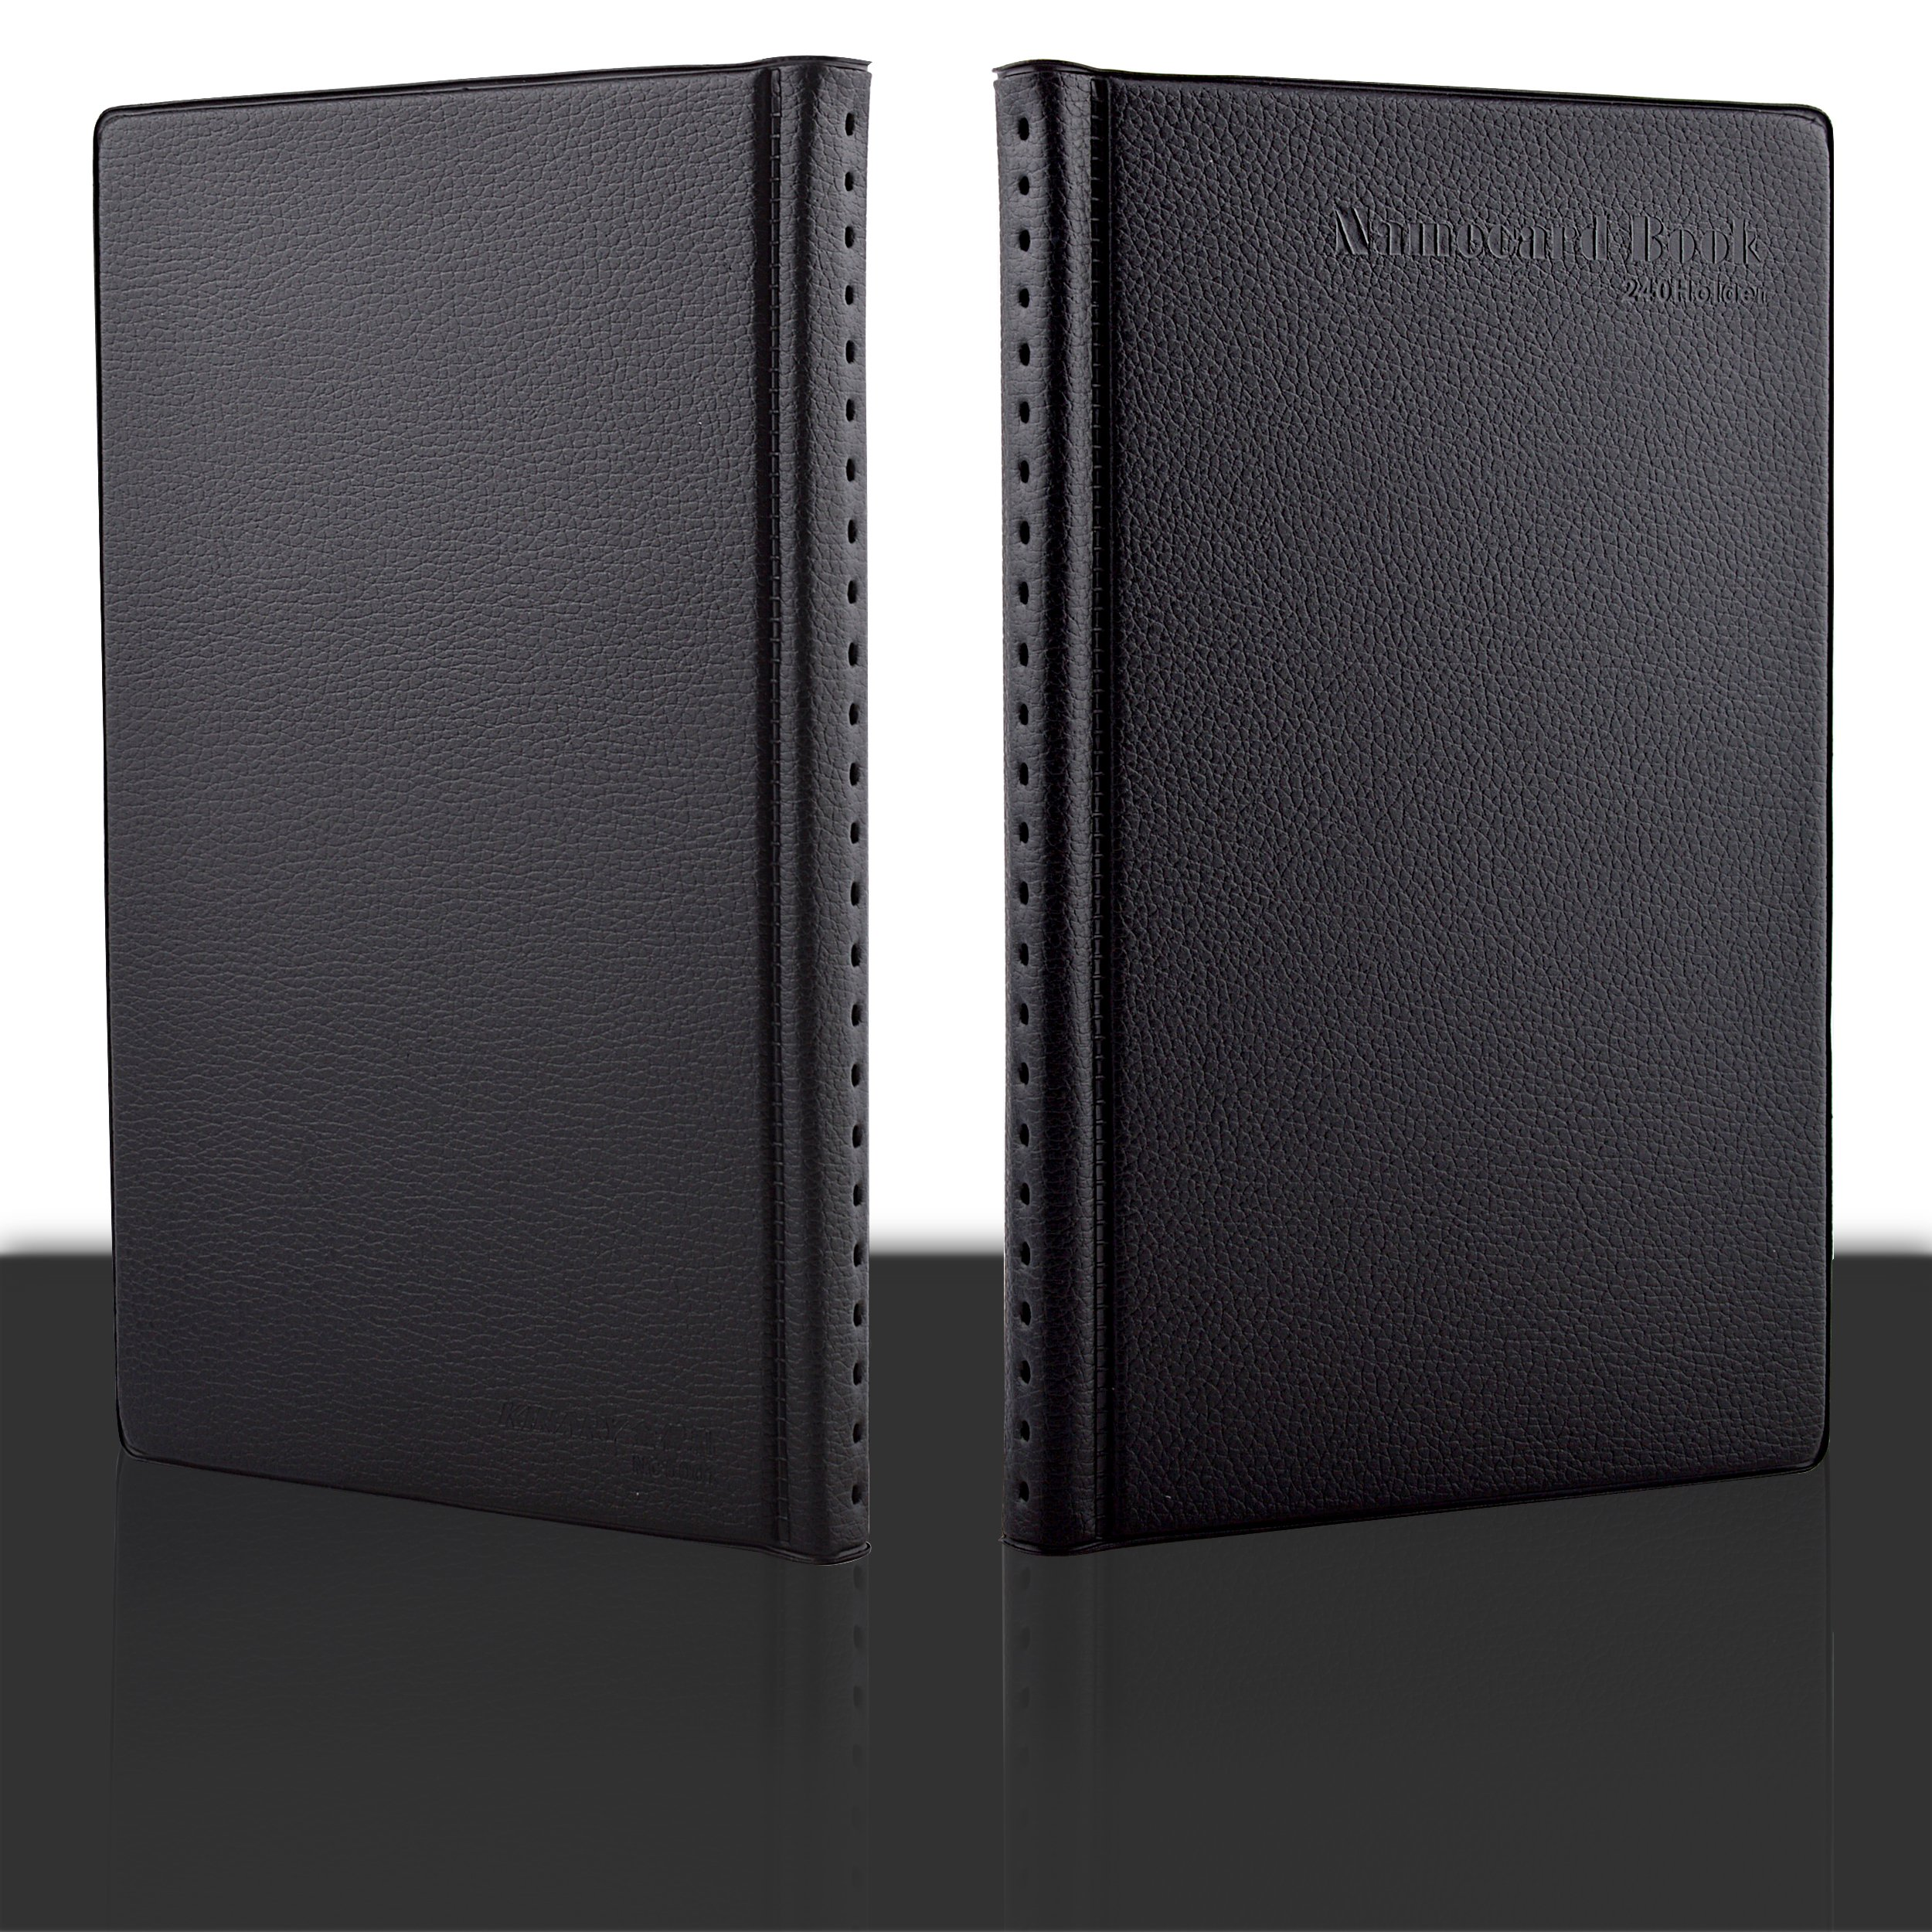 Maxgear professional pu leather business card book holder journal advanced material business card book in black color is made from high quality leather features luxurious and smooth texture 100 brand new dimensions reheart Image collections